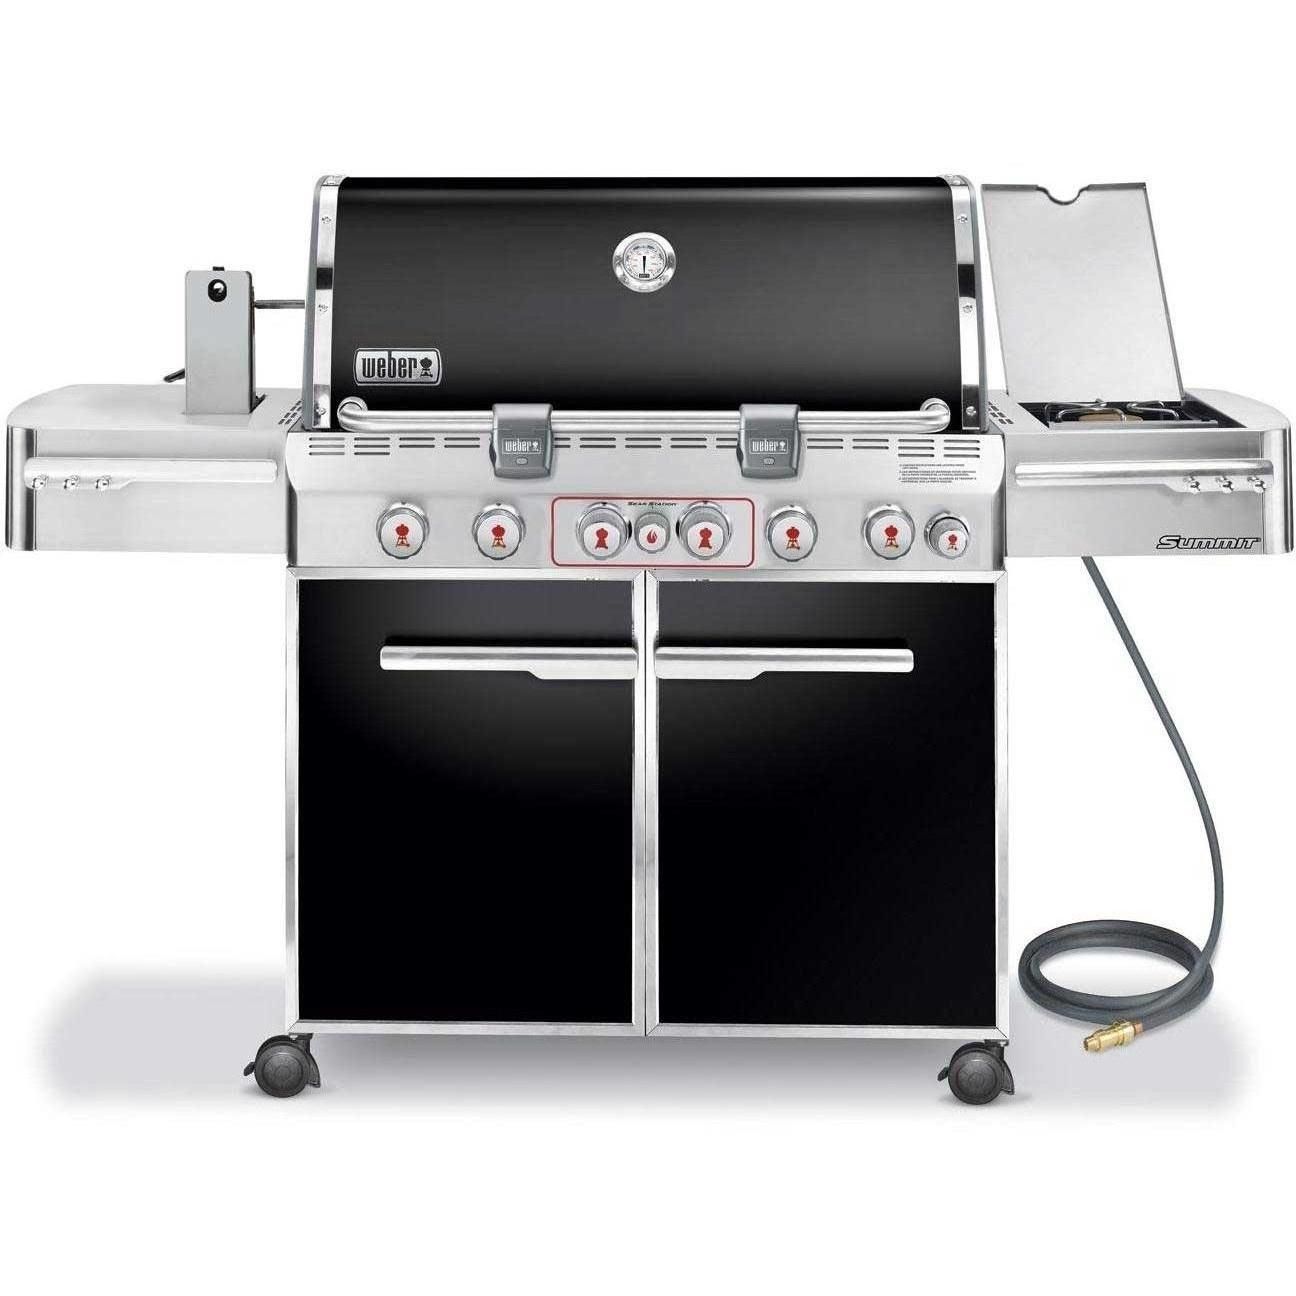 sales for sunstone grills 42 inch 5 burner propane gas grill with rotisserie prices price llhowrll. Black Bedroom Furniture Sets. Home Design Ideas